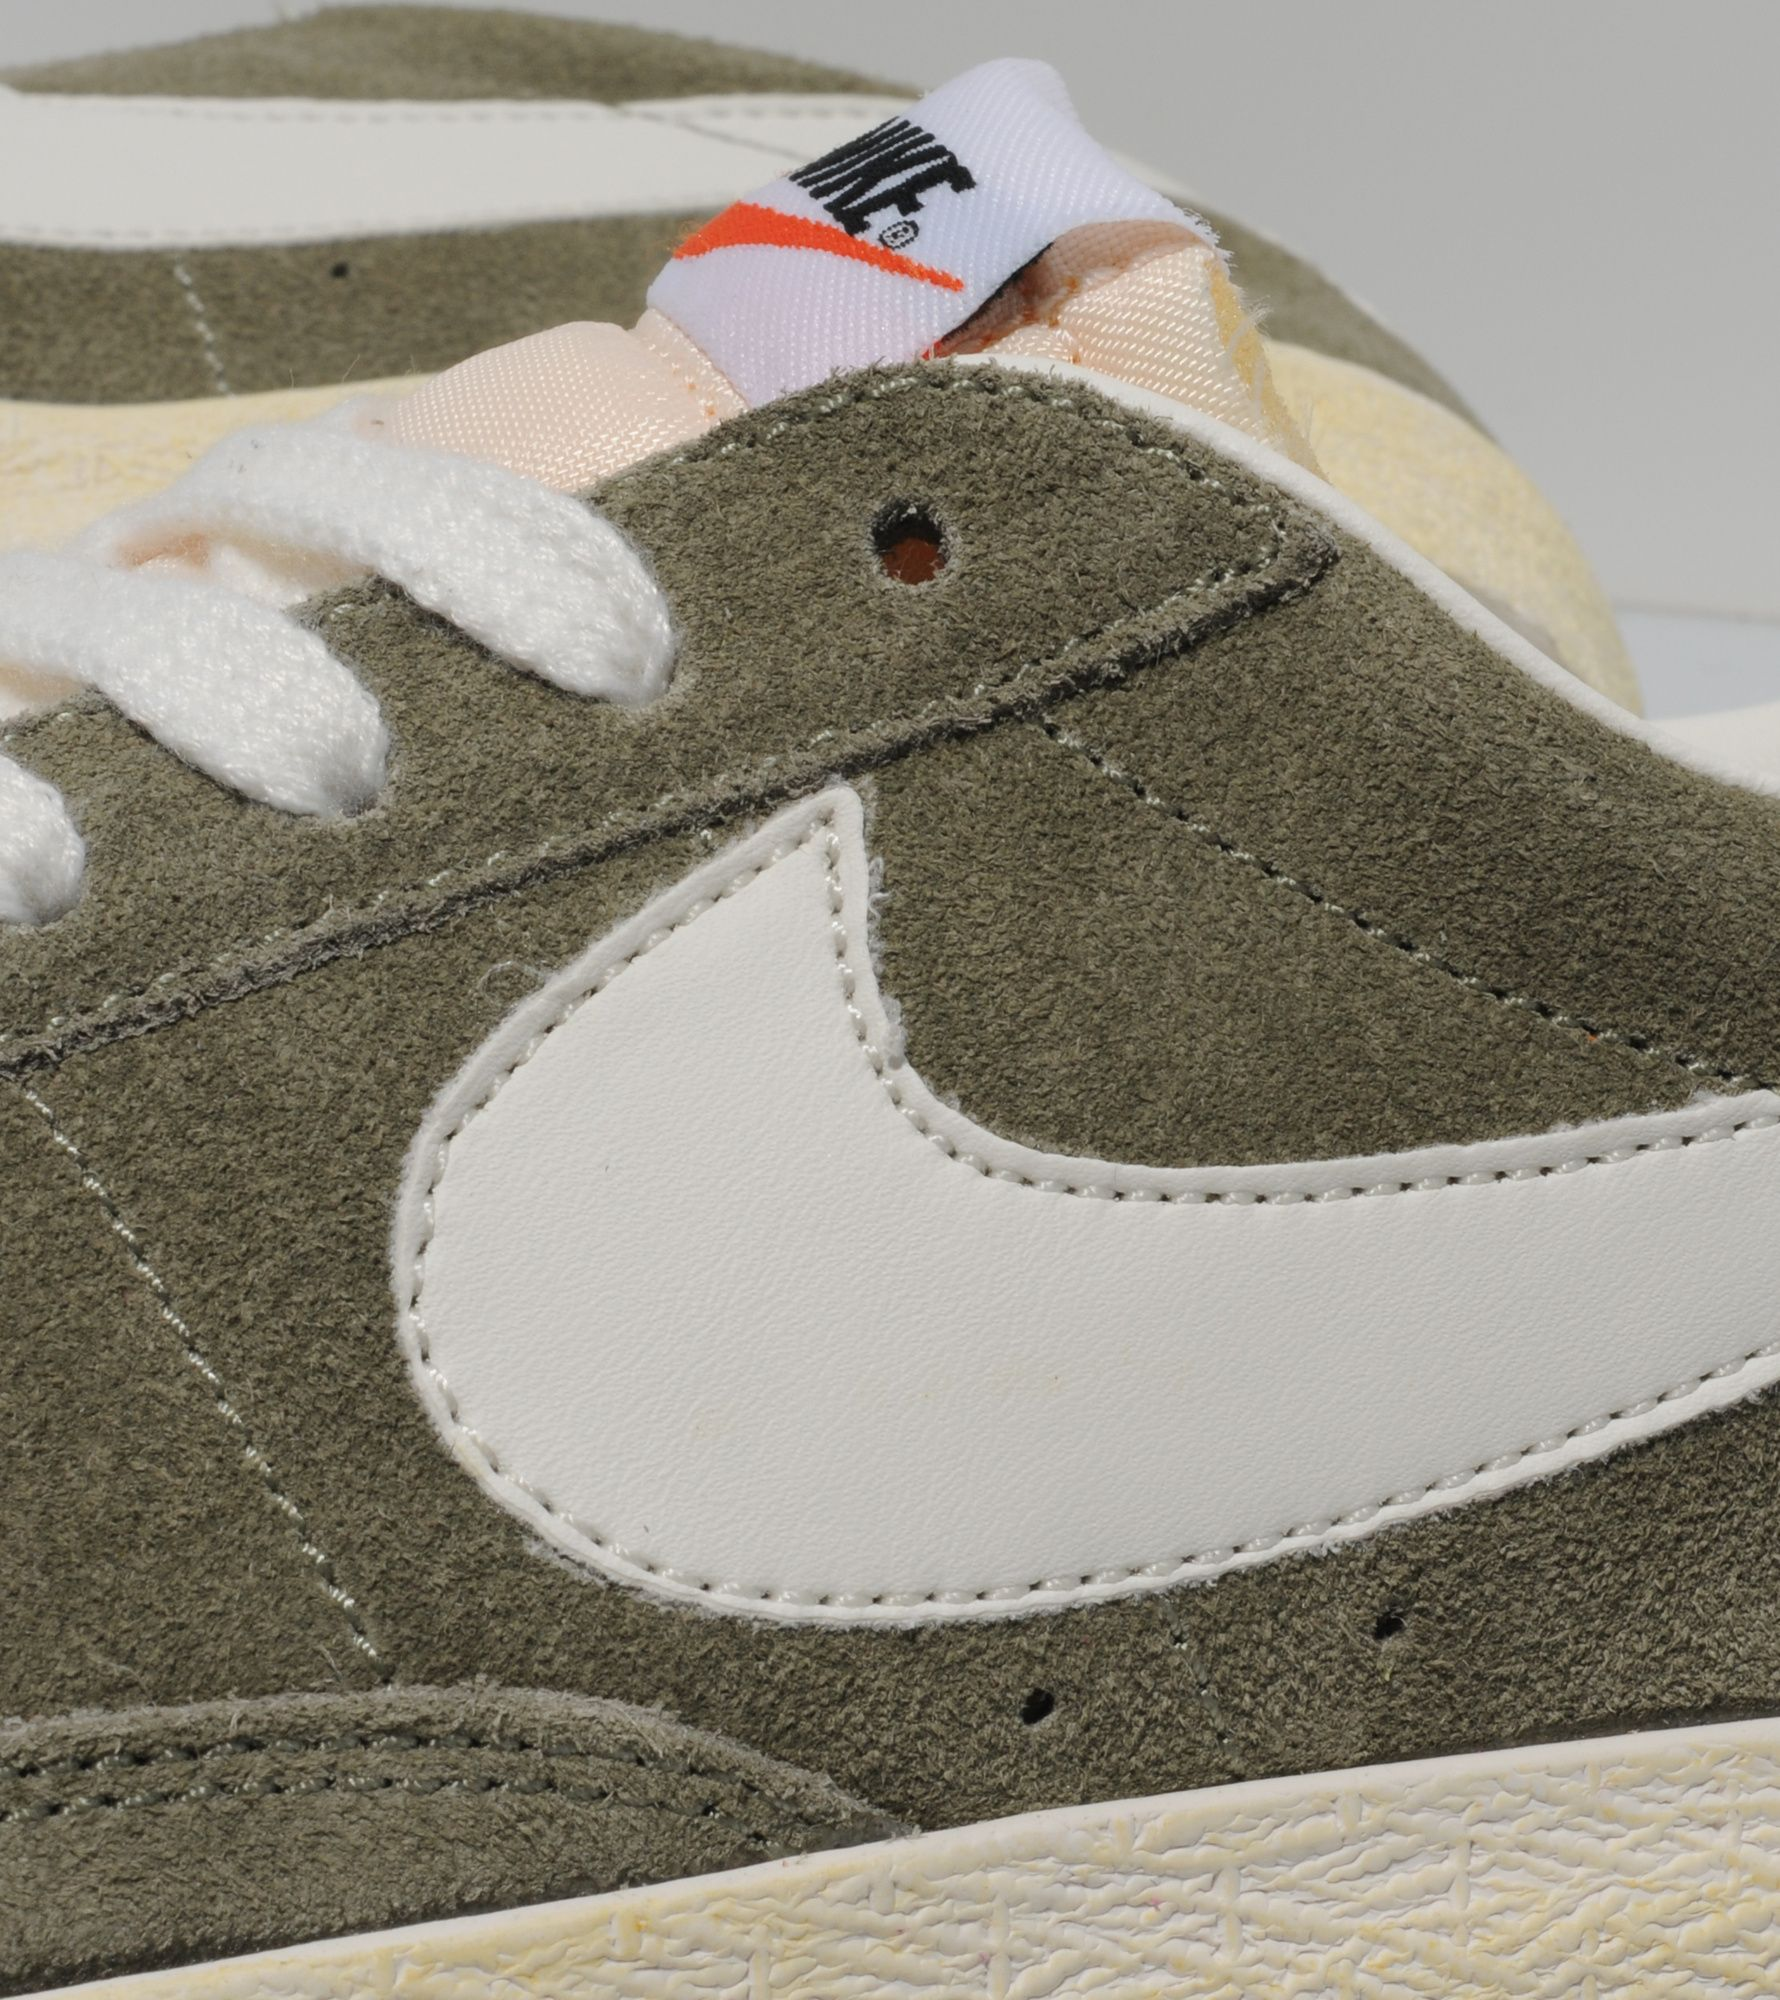 how to clean suede nike blazers